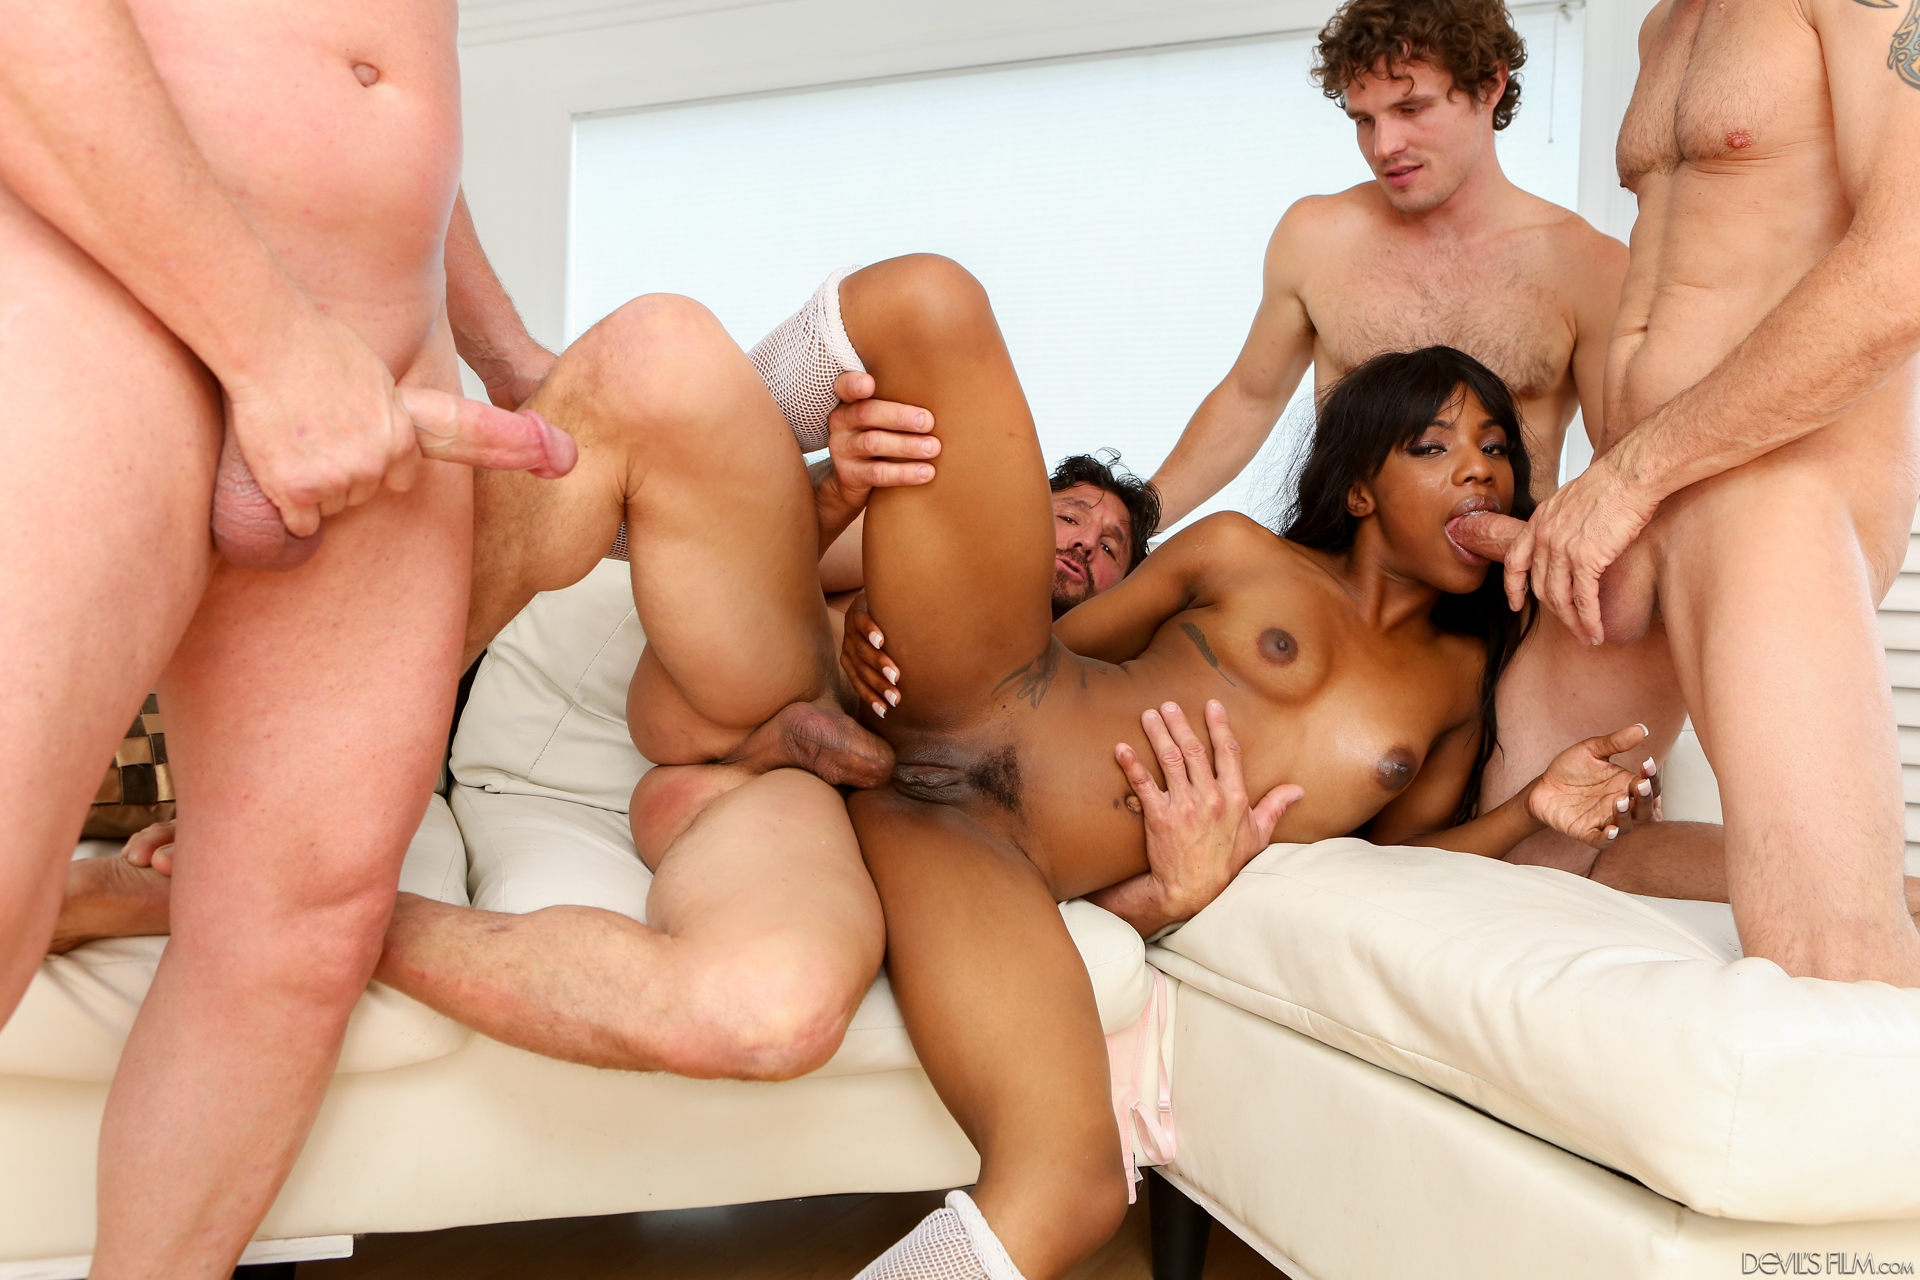 Man Porn Black White Woman#2